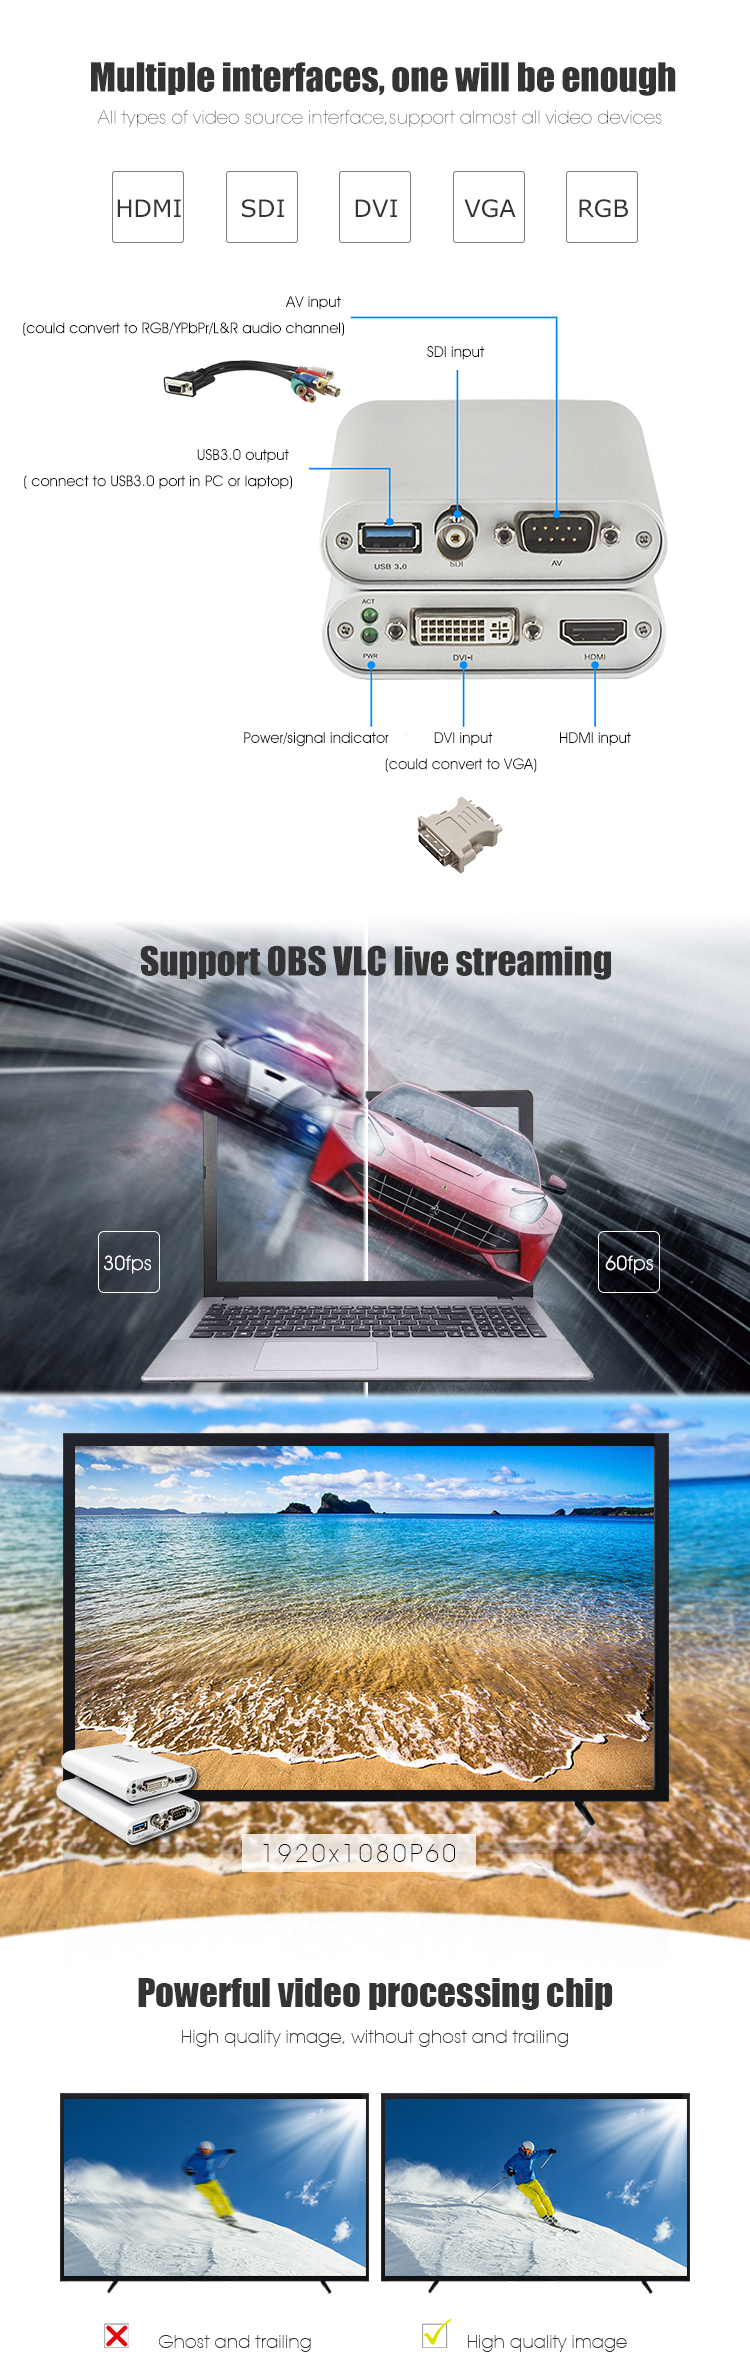 Hoge kwaliteit 1080P60 live streaming usb 3.0 hdmi video capture card